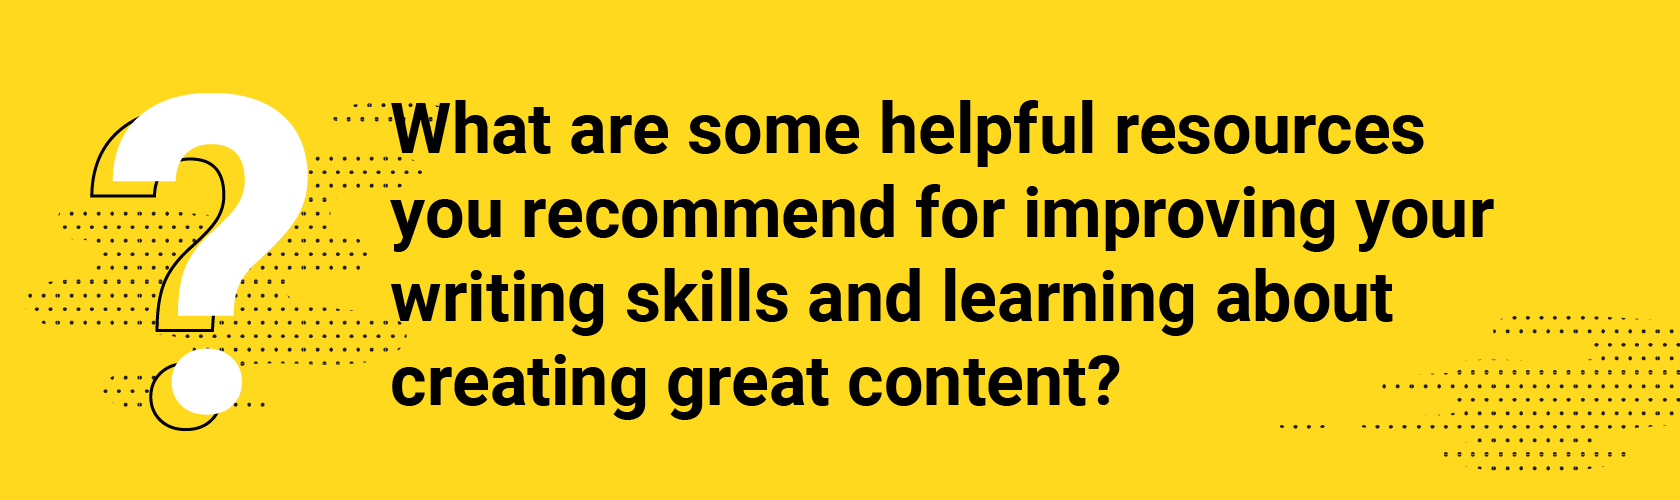 What are some helpful resources you recommend for improving your writing skills and learning about creating great content?